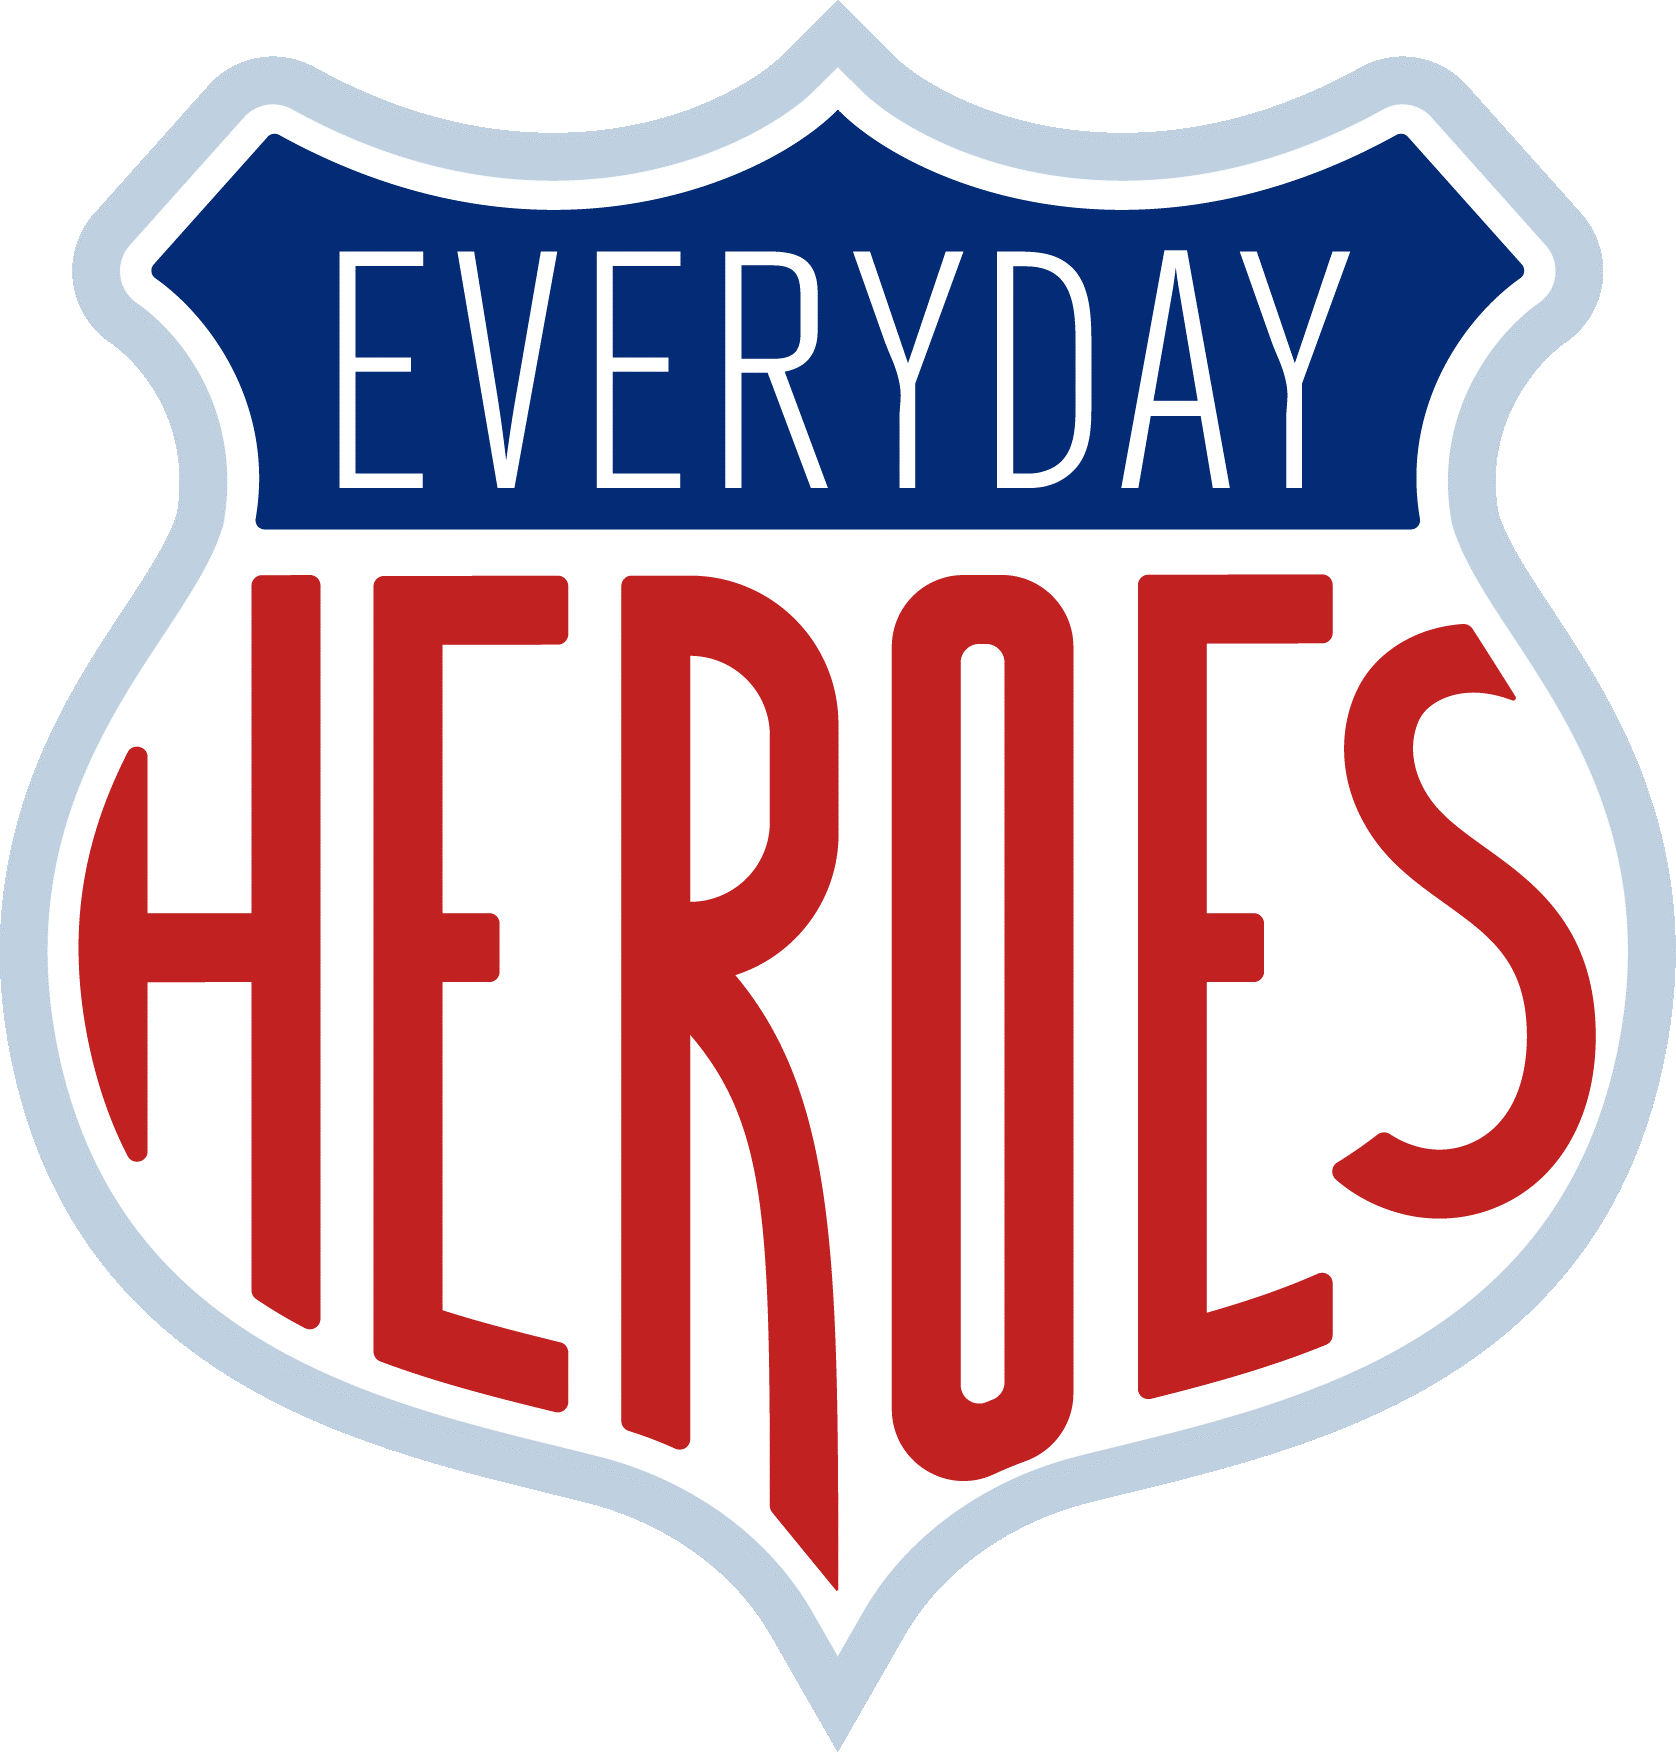 military clipart everyday heroes